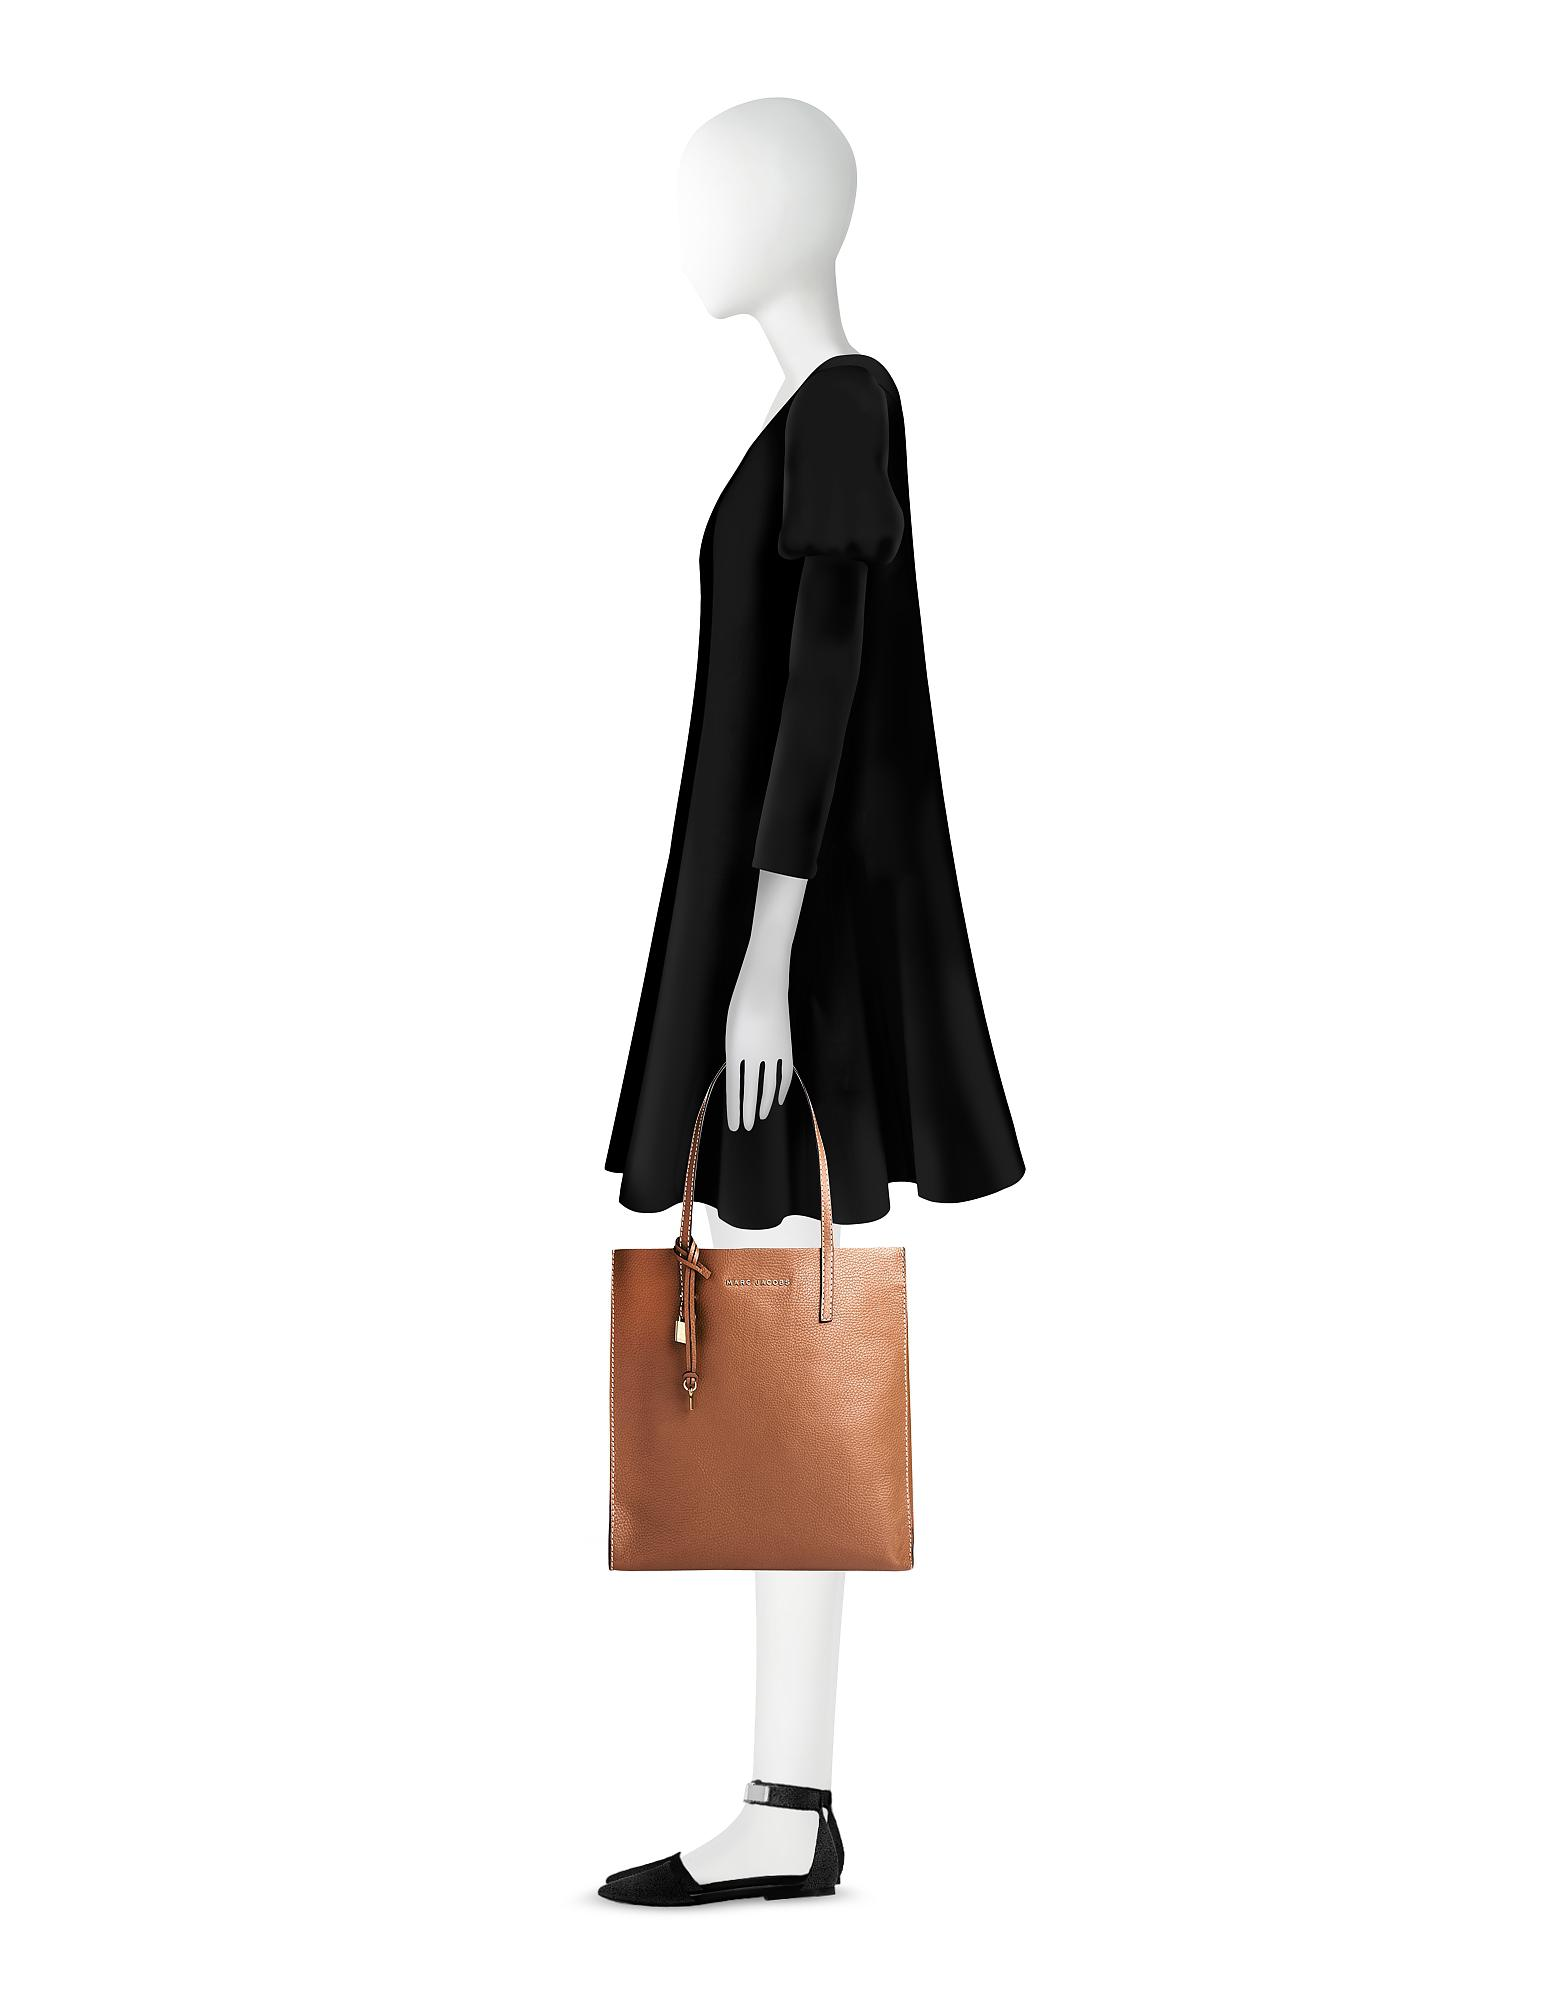 f42c292c3003 Lyst - Marc Jacobs Saddle Leather The Grind Shopper Tote Bag in Brown